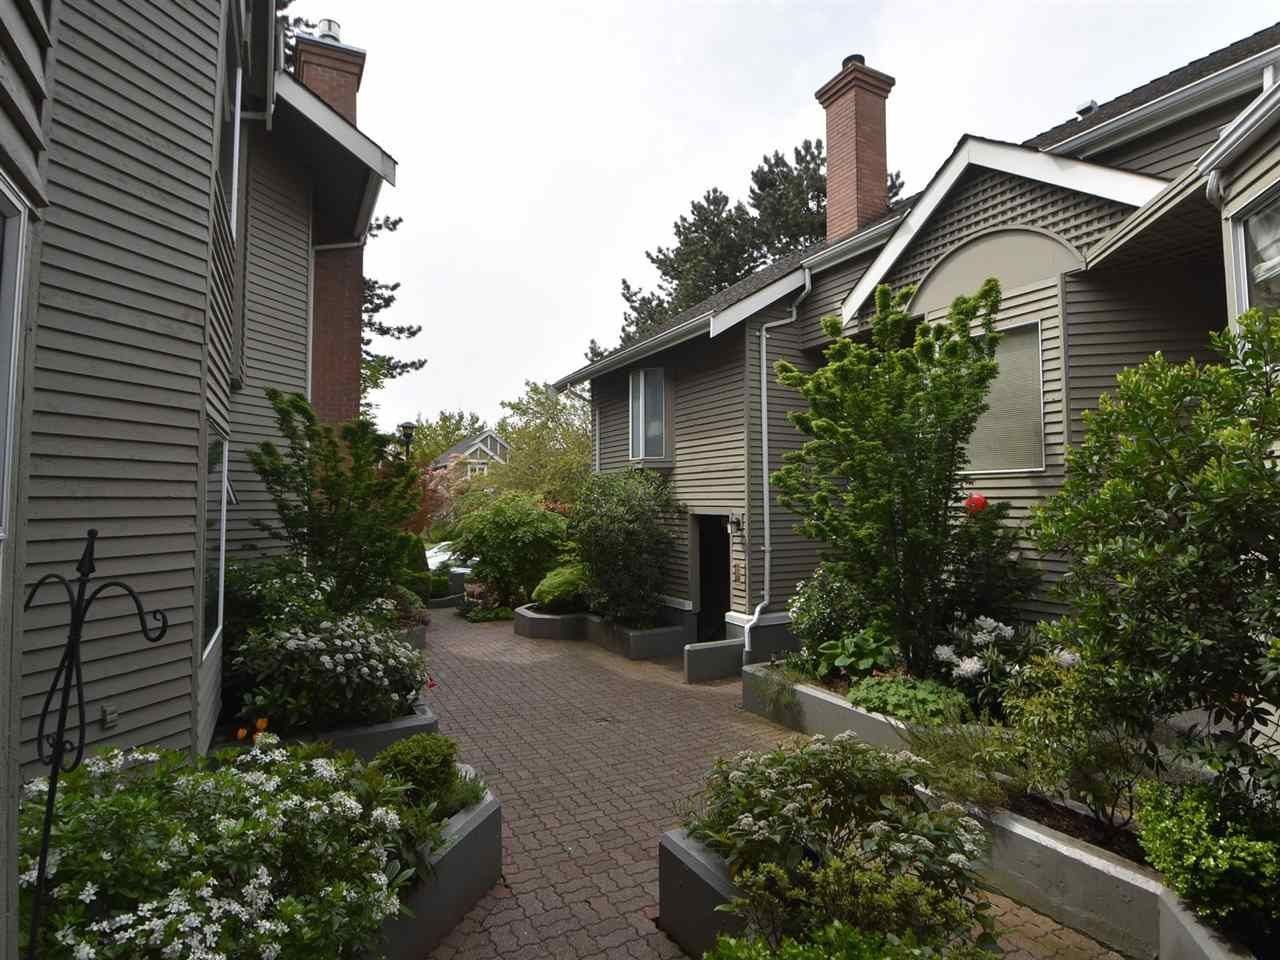 """Main Photo: 2669 W 10TH Avenue in Vancouver: Kitsilano Townhouse for sale in """"SIGNATURE COURT"""" (Vancouver West)  : MLS®# R2166556"""